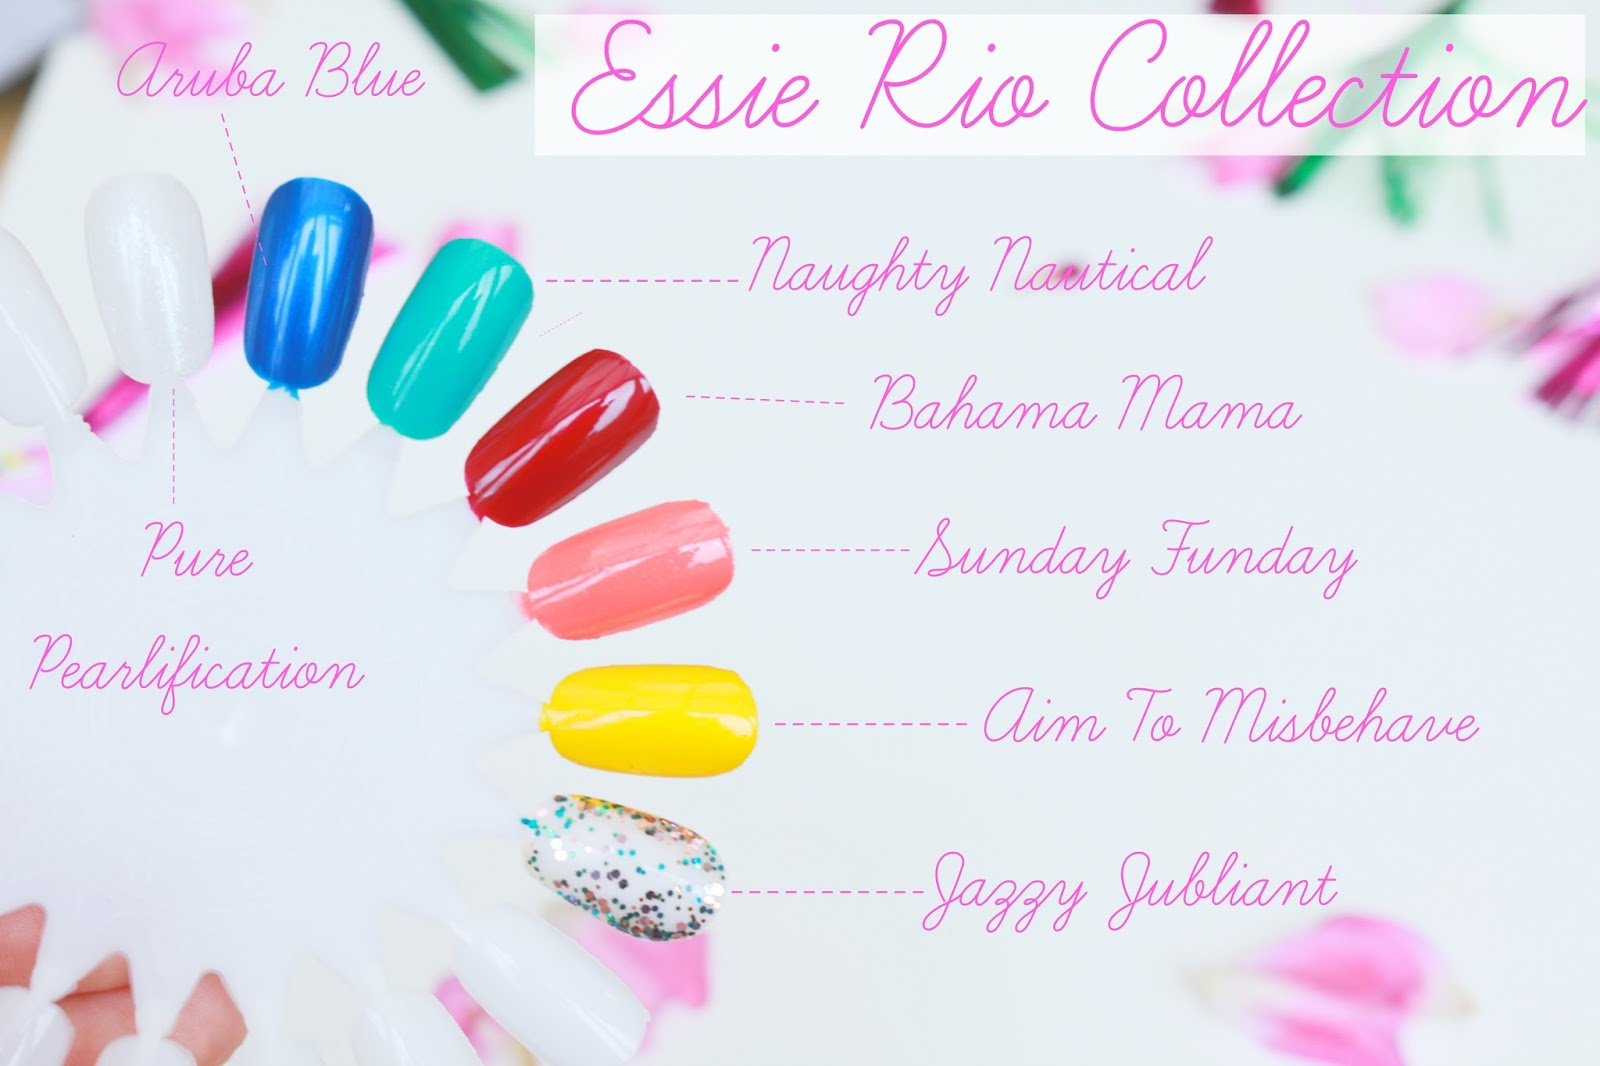 Beauty, Essie, Essie rio collection, nails, nail polish, Drugstore, essie rio collection, essie rio nails, nail swatches,